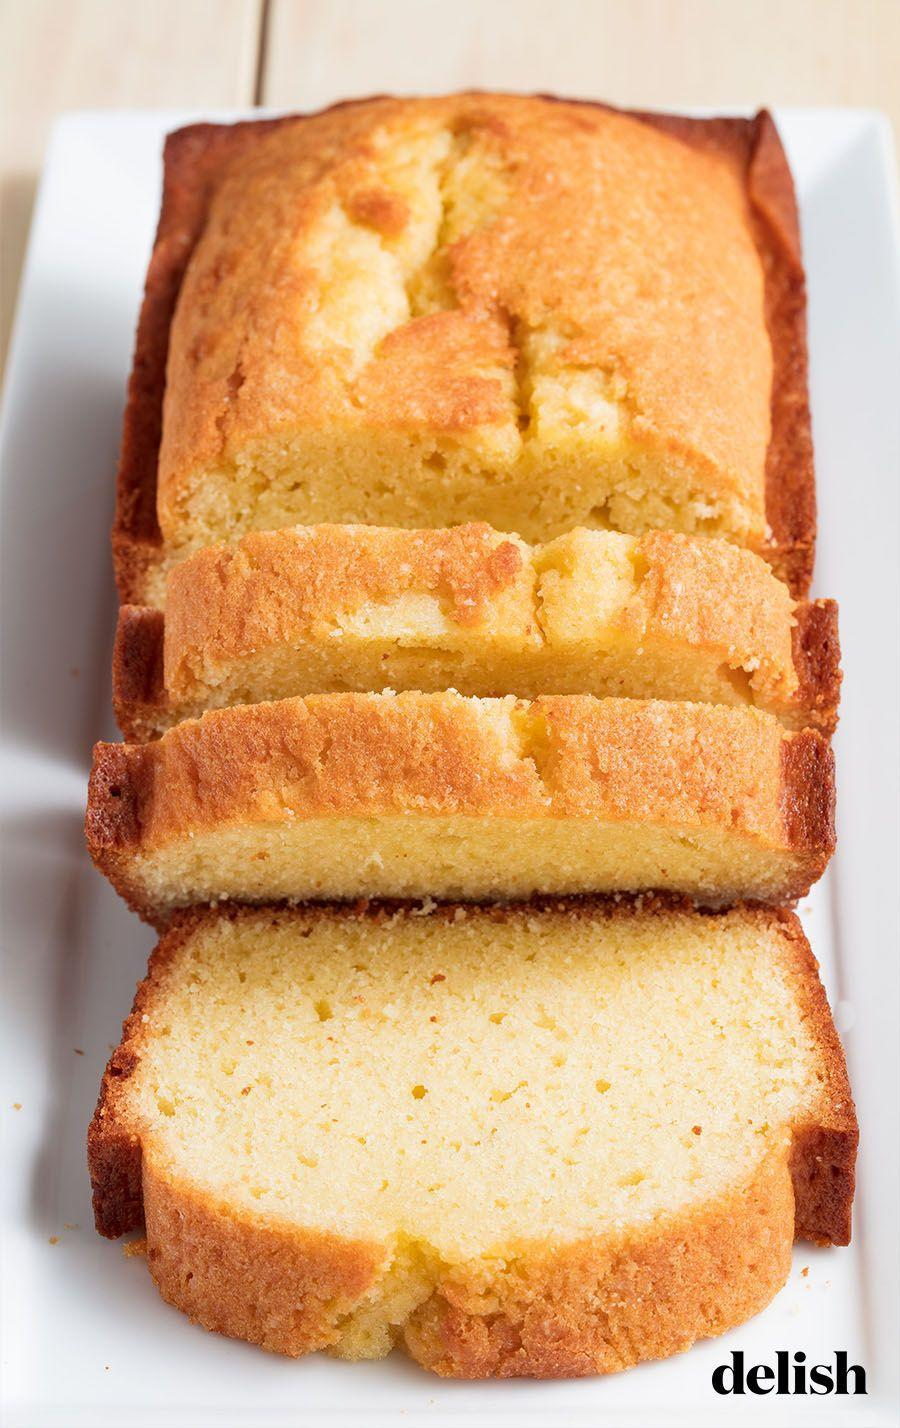 """<p>This easy pound cake is easy to dress up with fruit, chocolate sauce, or coconut.</p><p>Get the recipe from <a href=""""https://www.delish.com/cooking/recipe-ideas/a20086982/easy-pound-cake-recipe/"""" rel=""""nofollow noopener"""" target=""""_blank"""" data-ylk=""""slk:Delish"""" class=""""link rapid-noclick-resp"""">Delish</a>. </p>"""